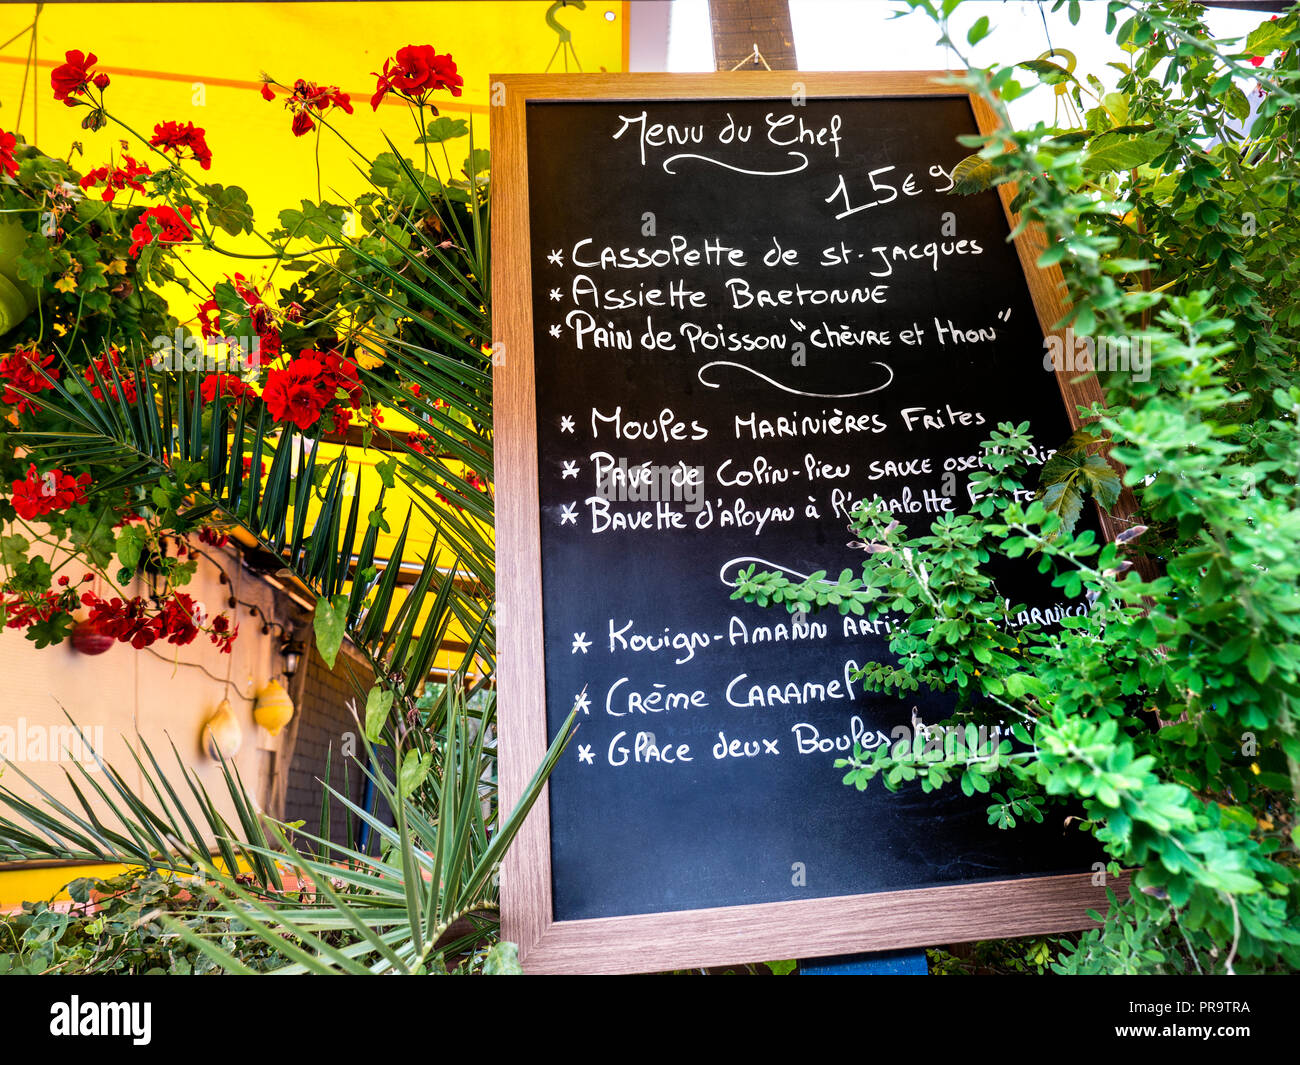 French floral blackboard menu of the day 'Menu du Chef' with local specialities outside typical rustic French restaurant in Concarneau Brittany France - Stock Image